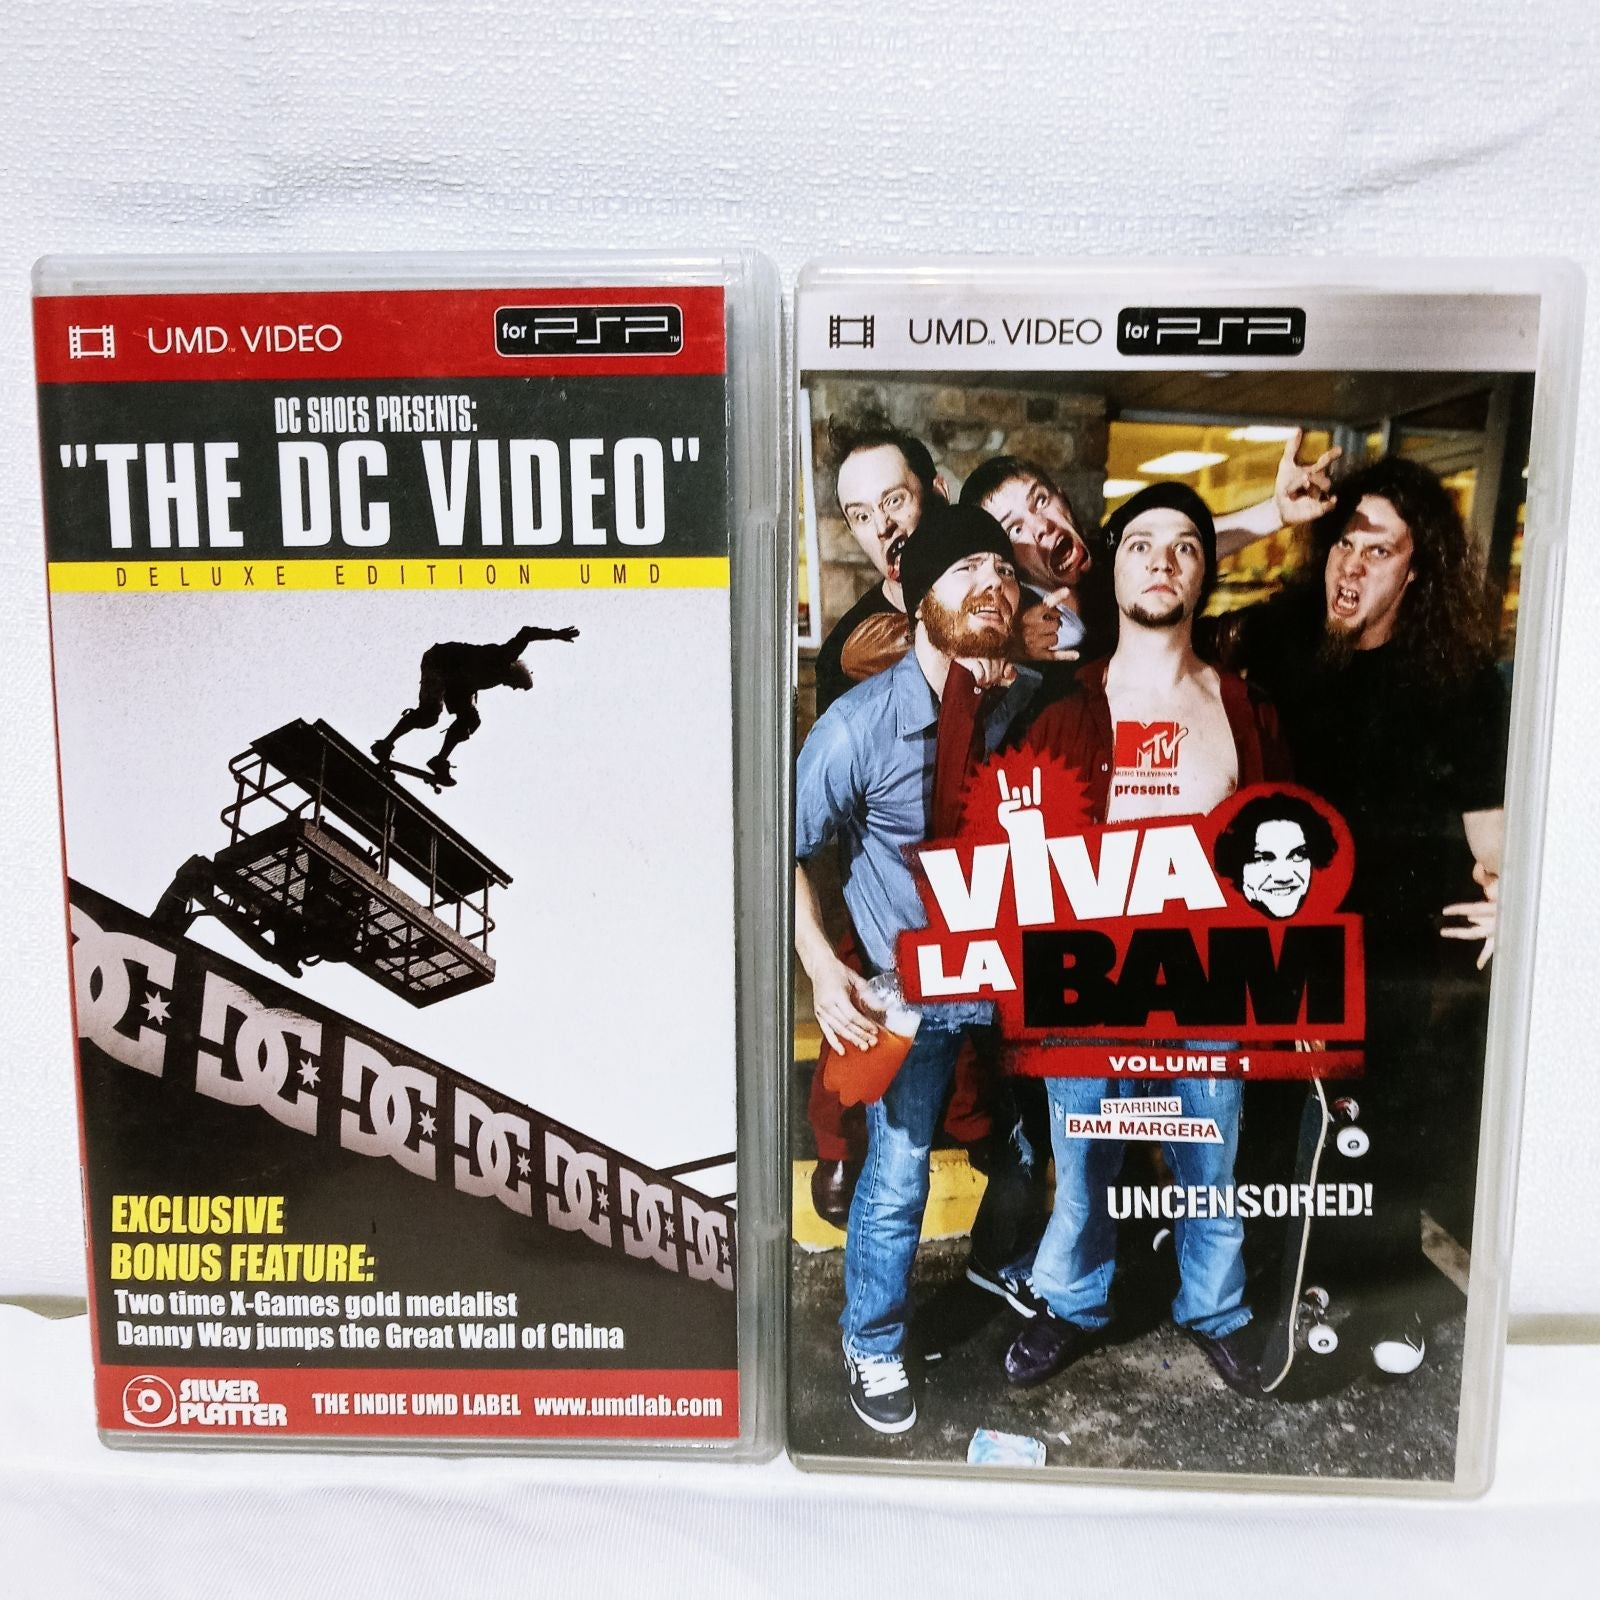 PSP VIDEO THE DC VIDEO & VIVA LA BAM